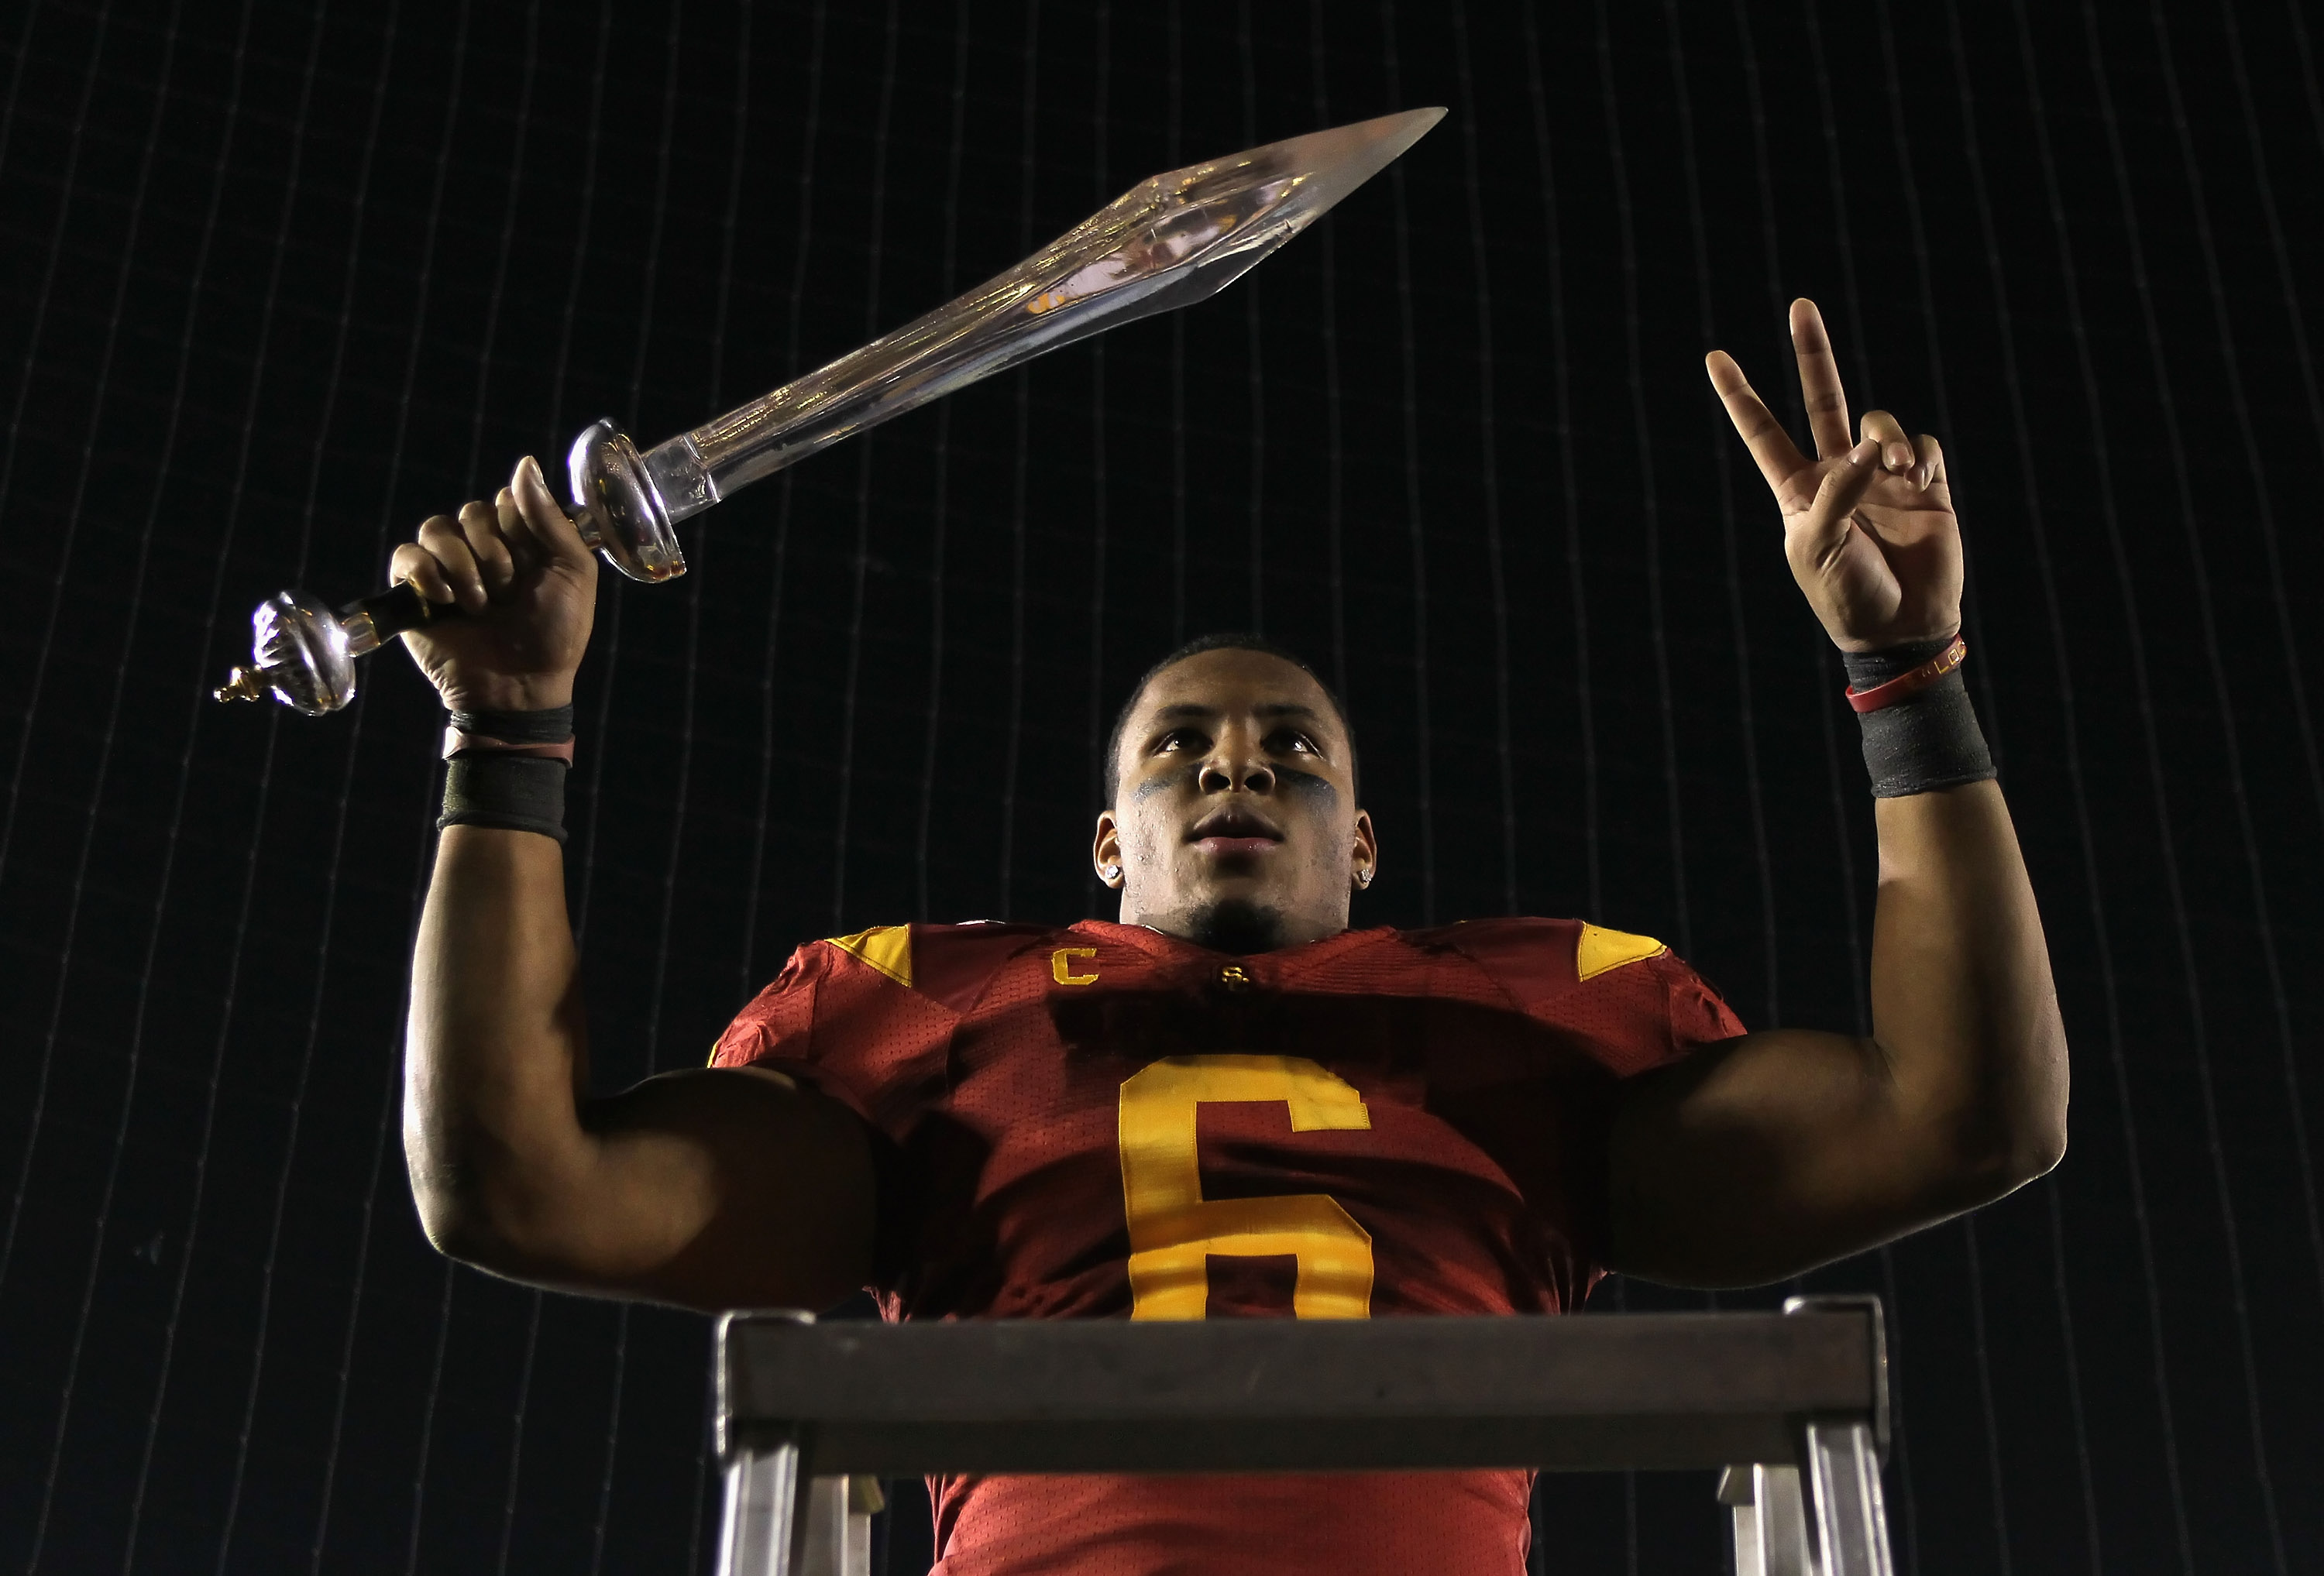 PASADENA, CA - DECEMBER 04:  Malcolm Smith #6 of the USC Trojans celebrates following his teams victory over the UCLA Bruins at the Rose Bowl on December 4, 2010 in Pasadena, California.  USC defeated UCLA 28-14.  (Photo by Jeff Gross/Getty Images)